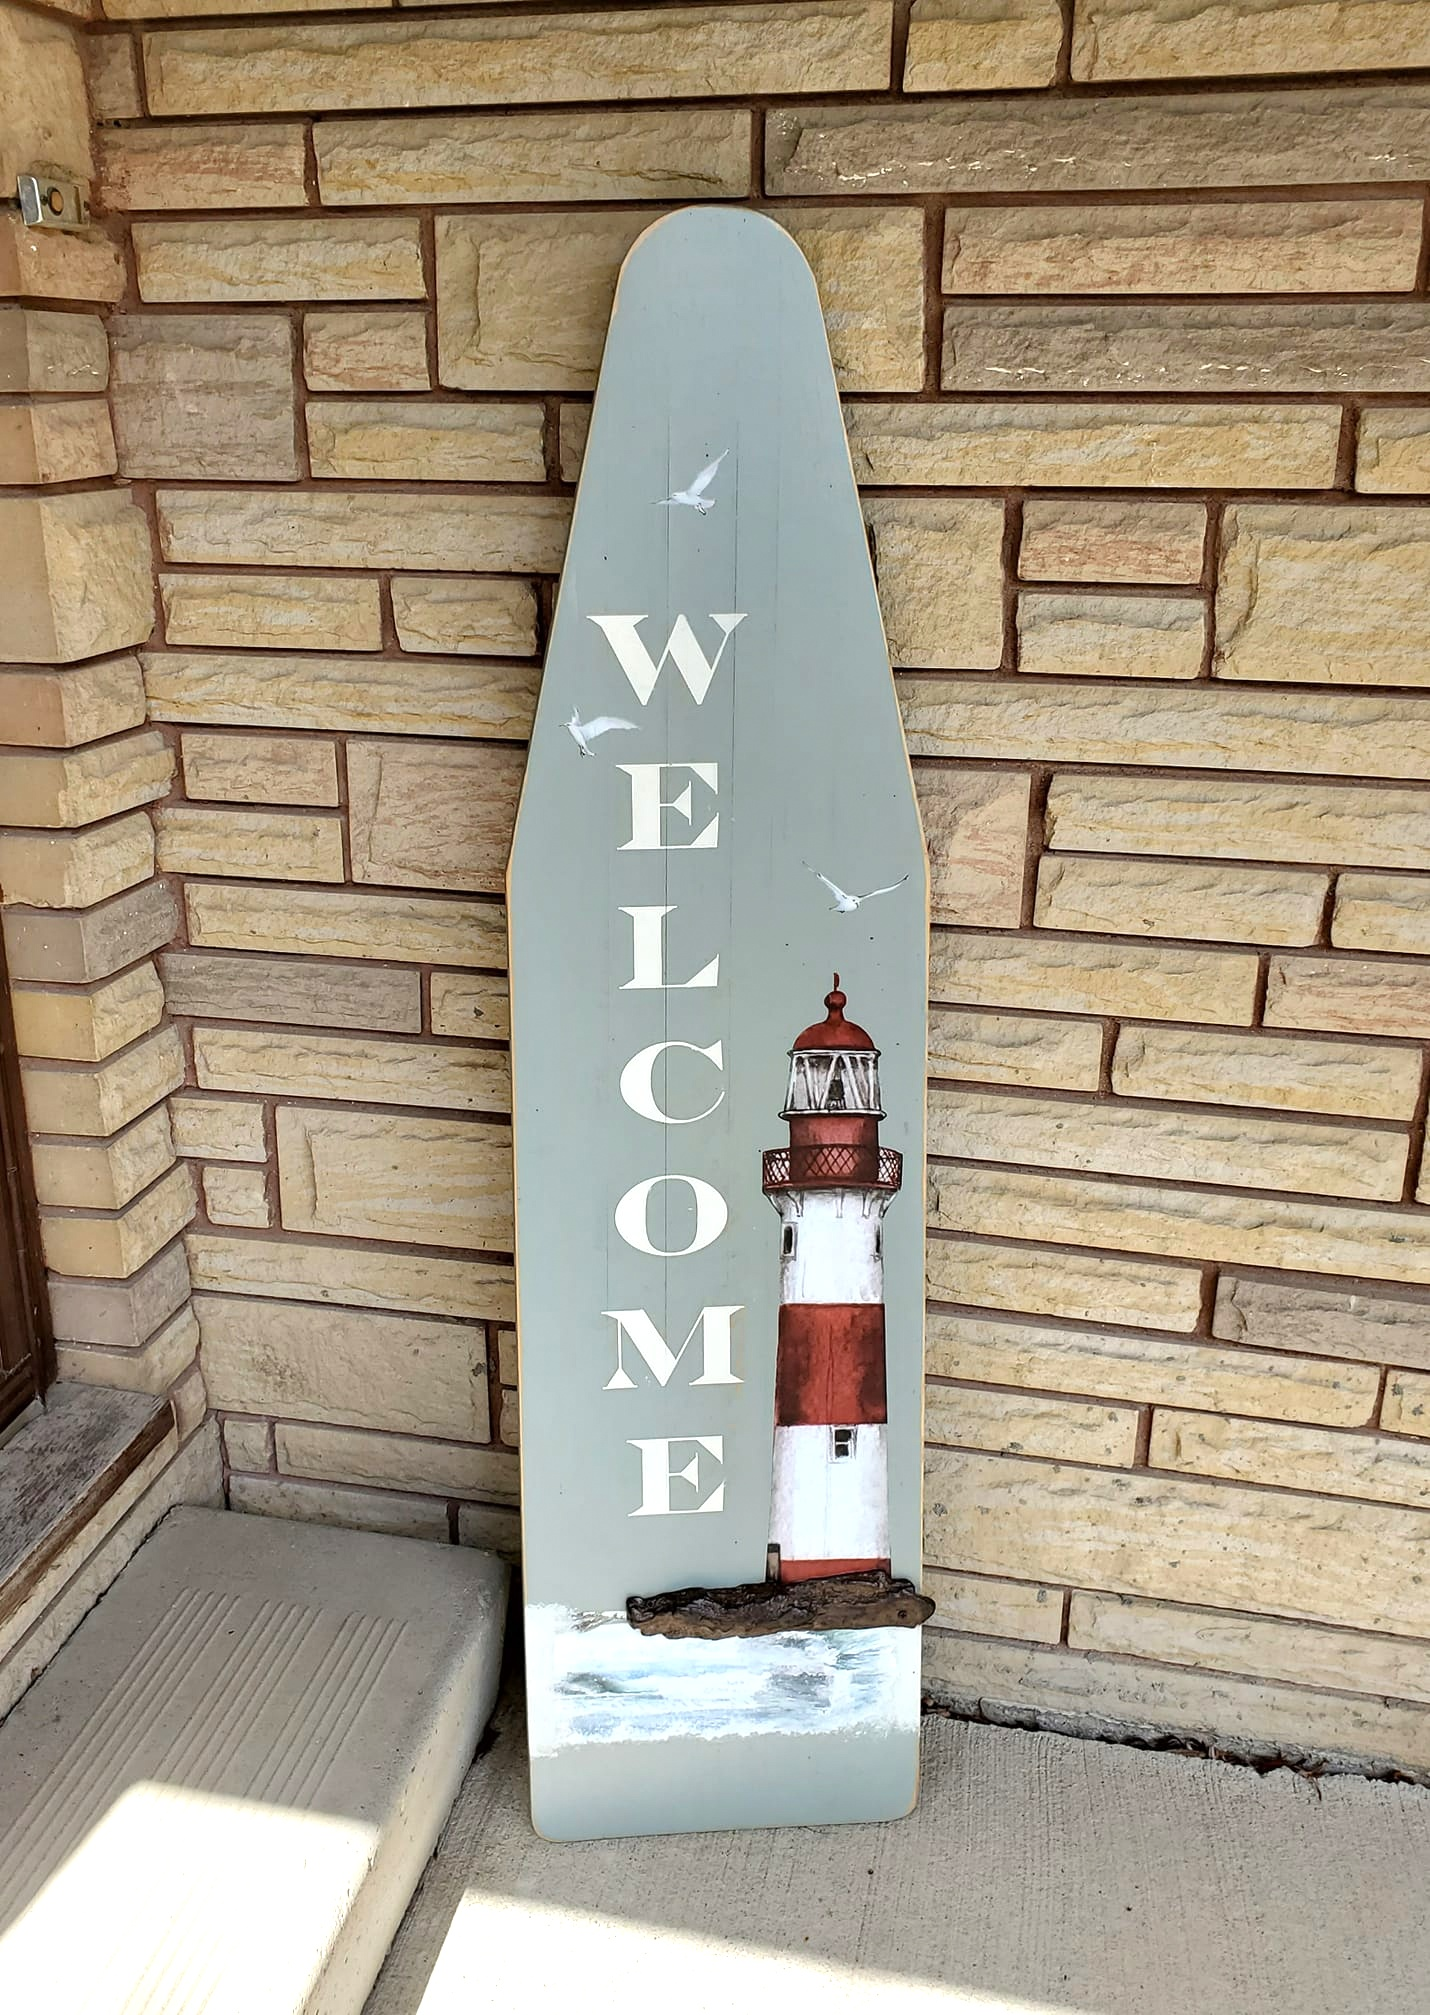 Ironing board welcome sign by Junky Encores on Facebook, featured on DIY Salvaged Junk Projects 573 on Funky Junk!